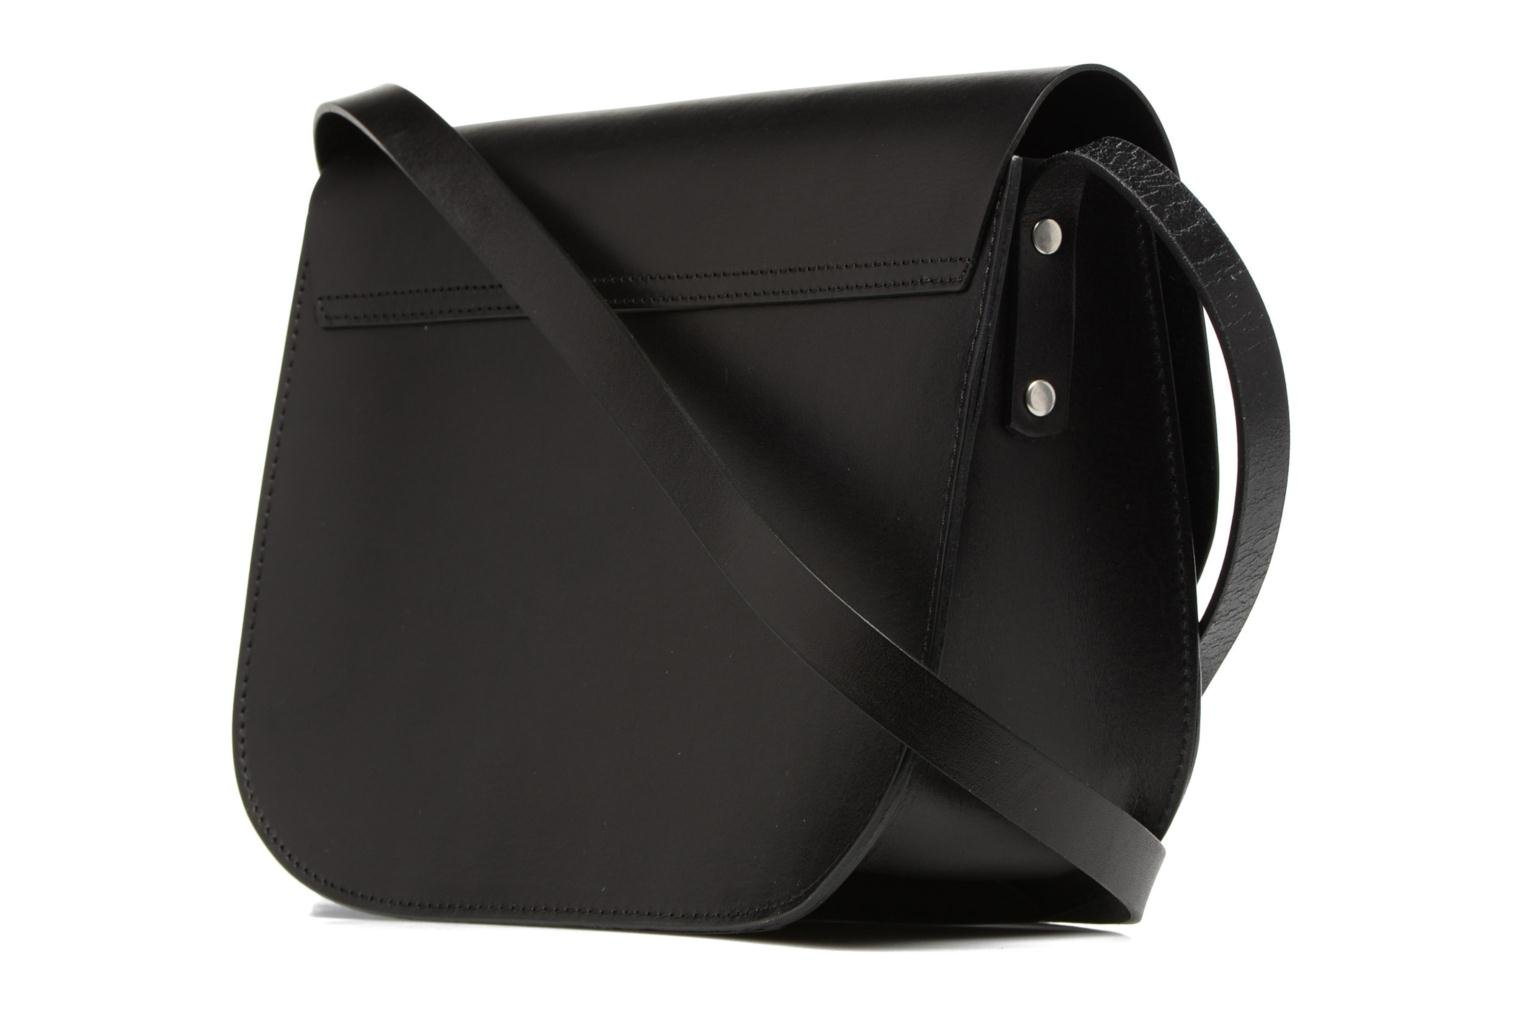 Leather Lasanne Pieces Leather Lasanne Black Lasanne Pieces bag Pieces bag Black Leather RqHAB